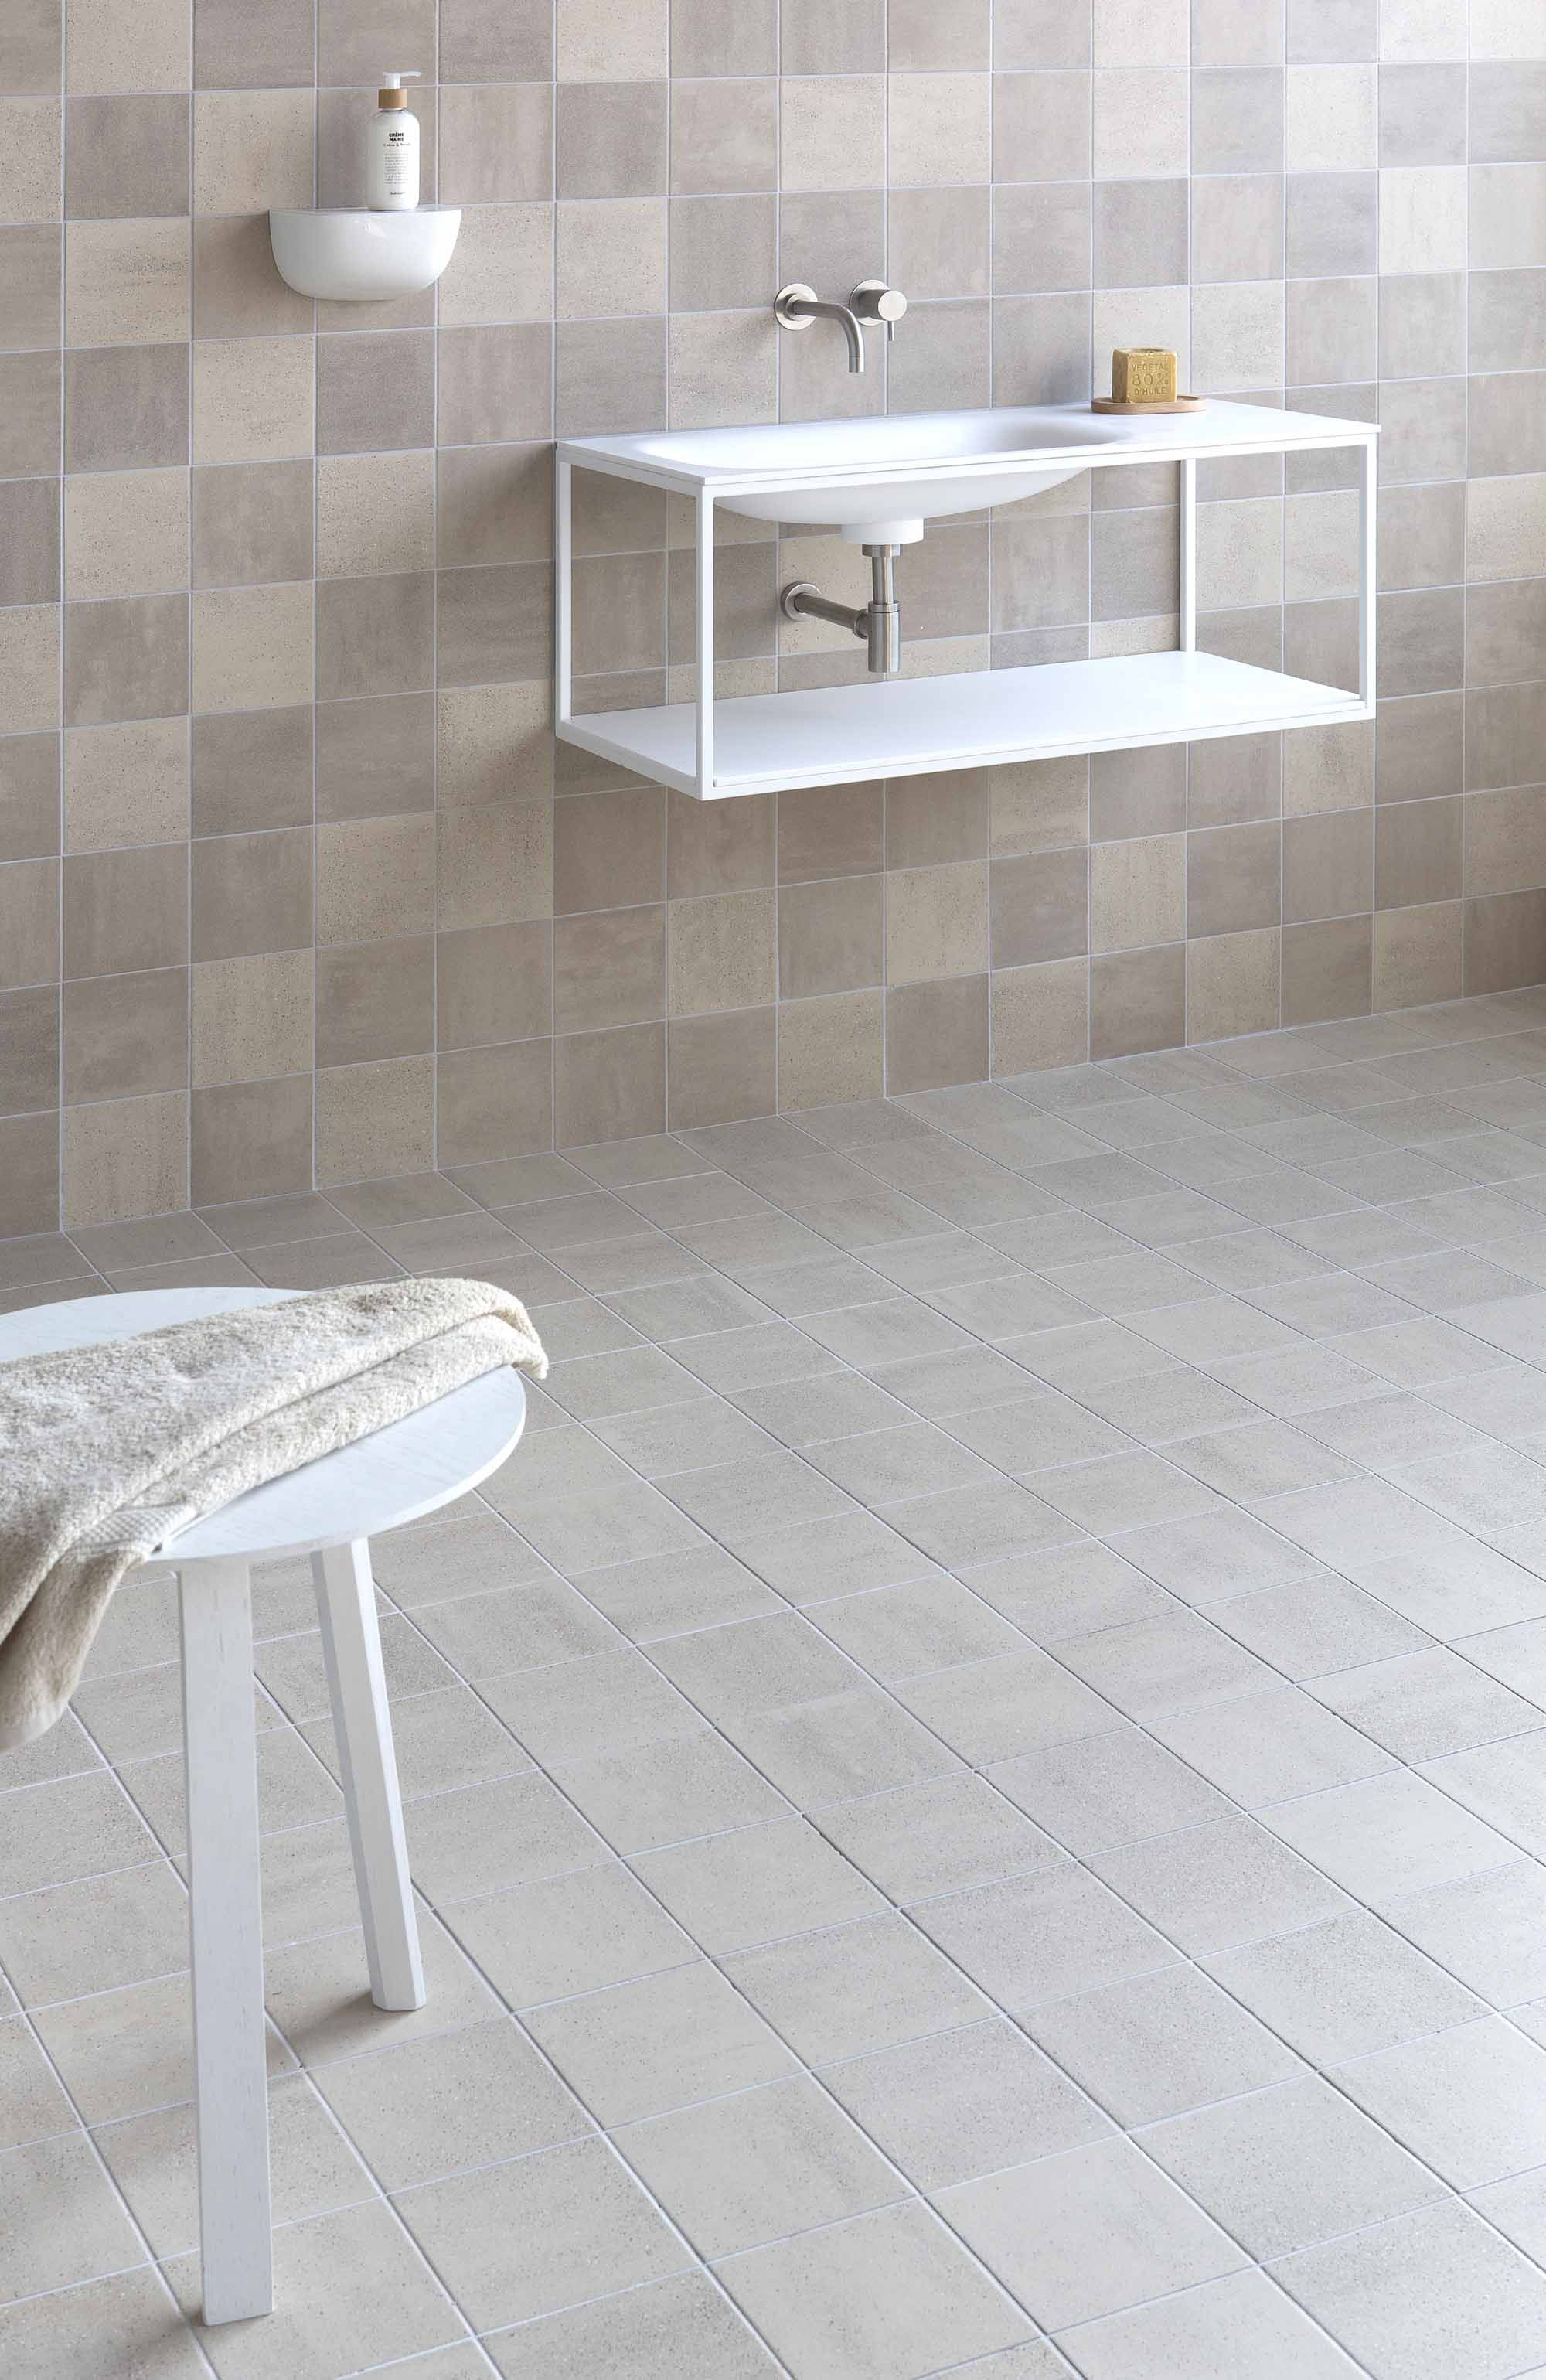 Mosa Tiles mosa collection mosa tiles house wall floor warm